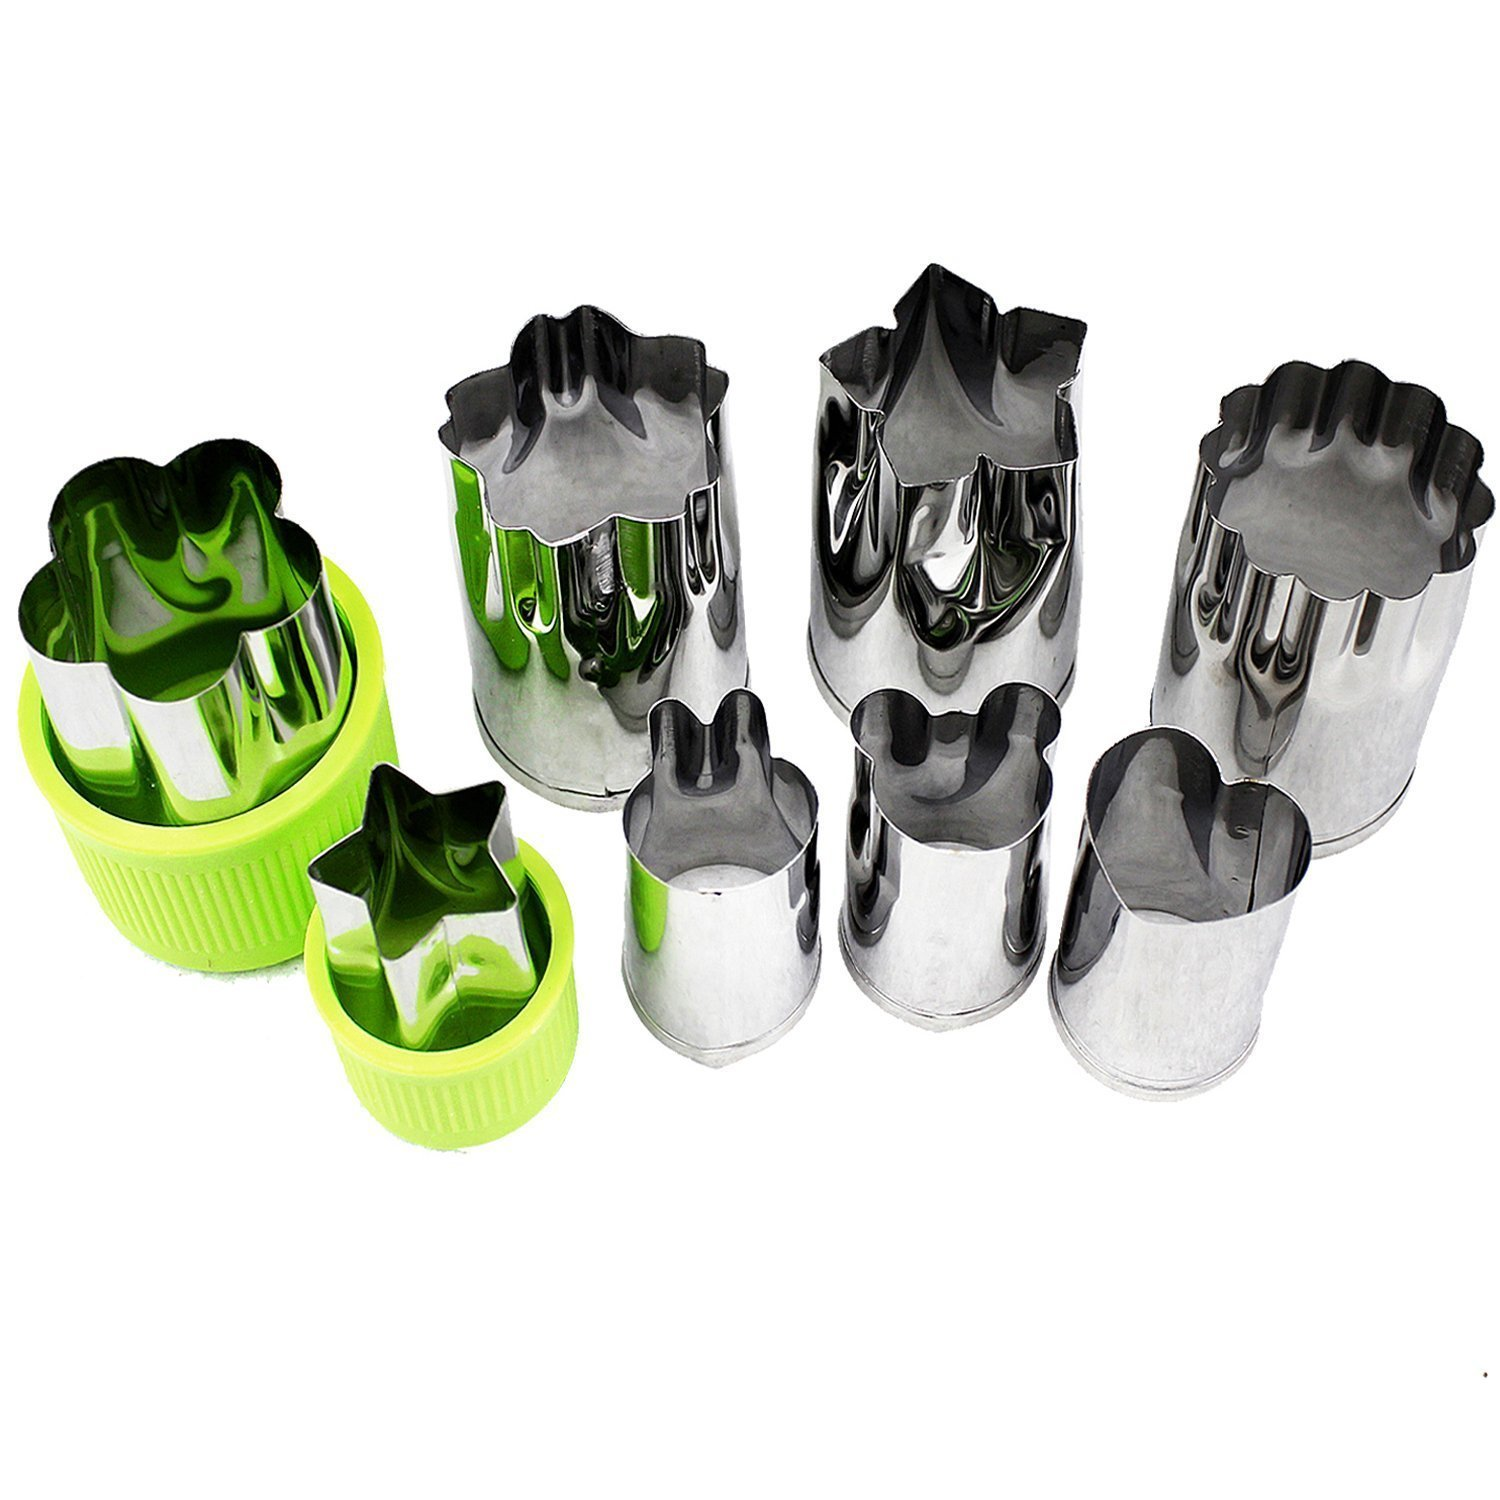 Bento Food Cutters